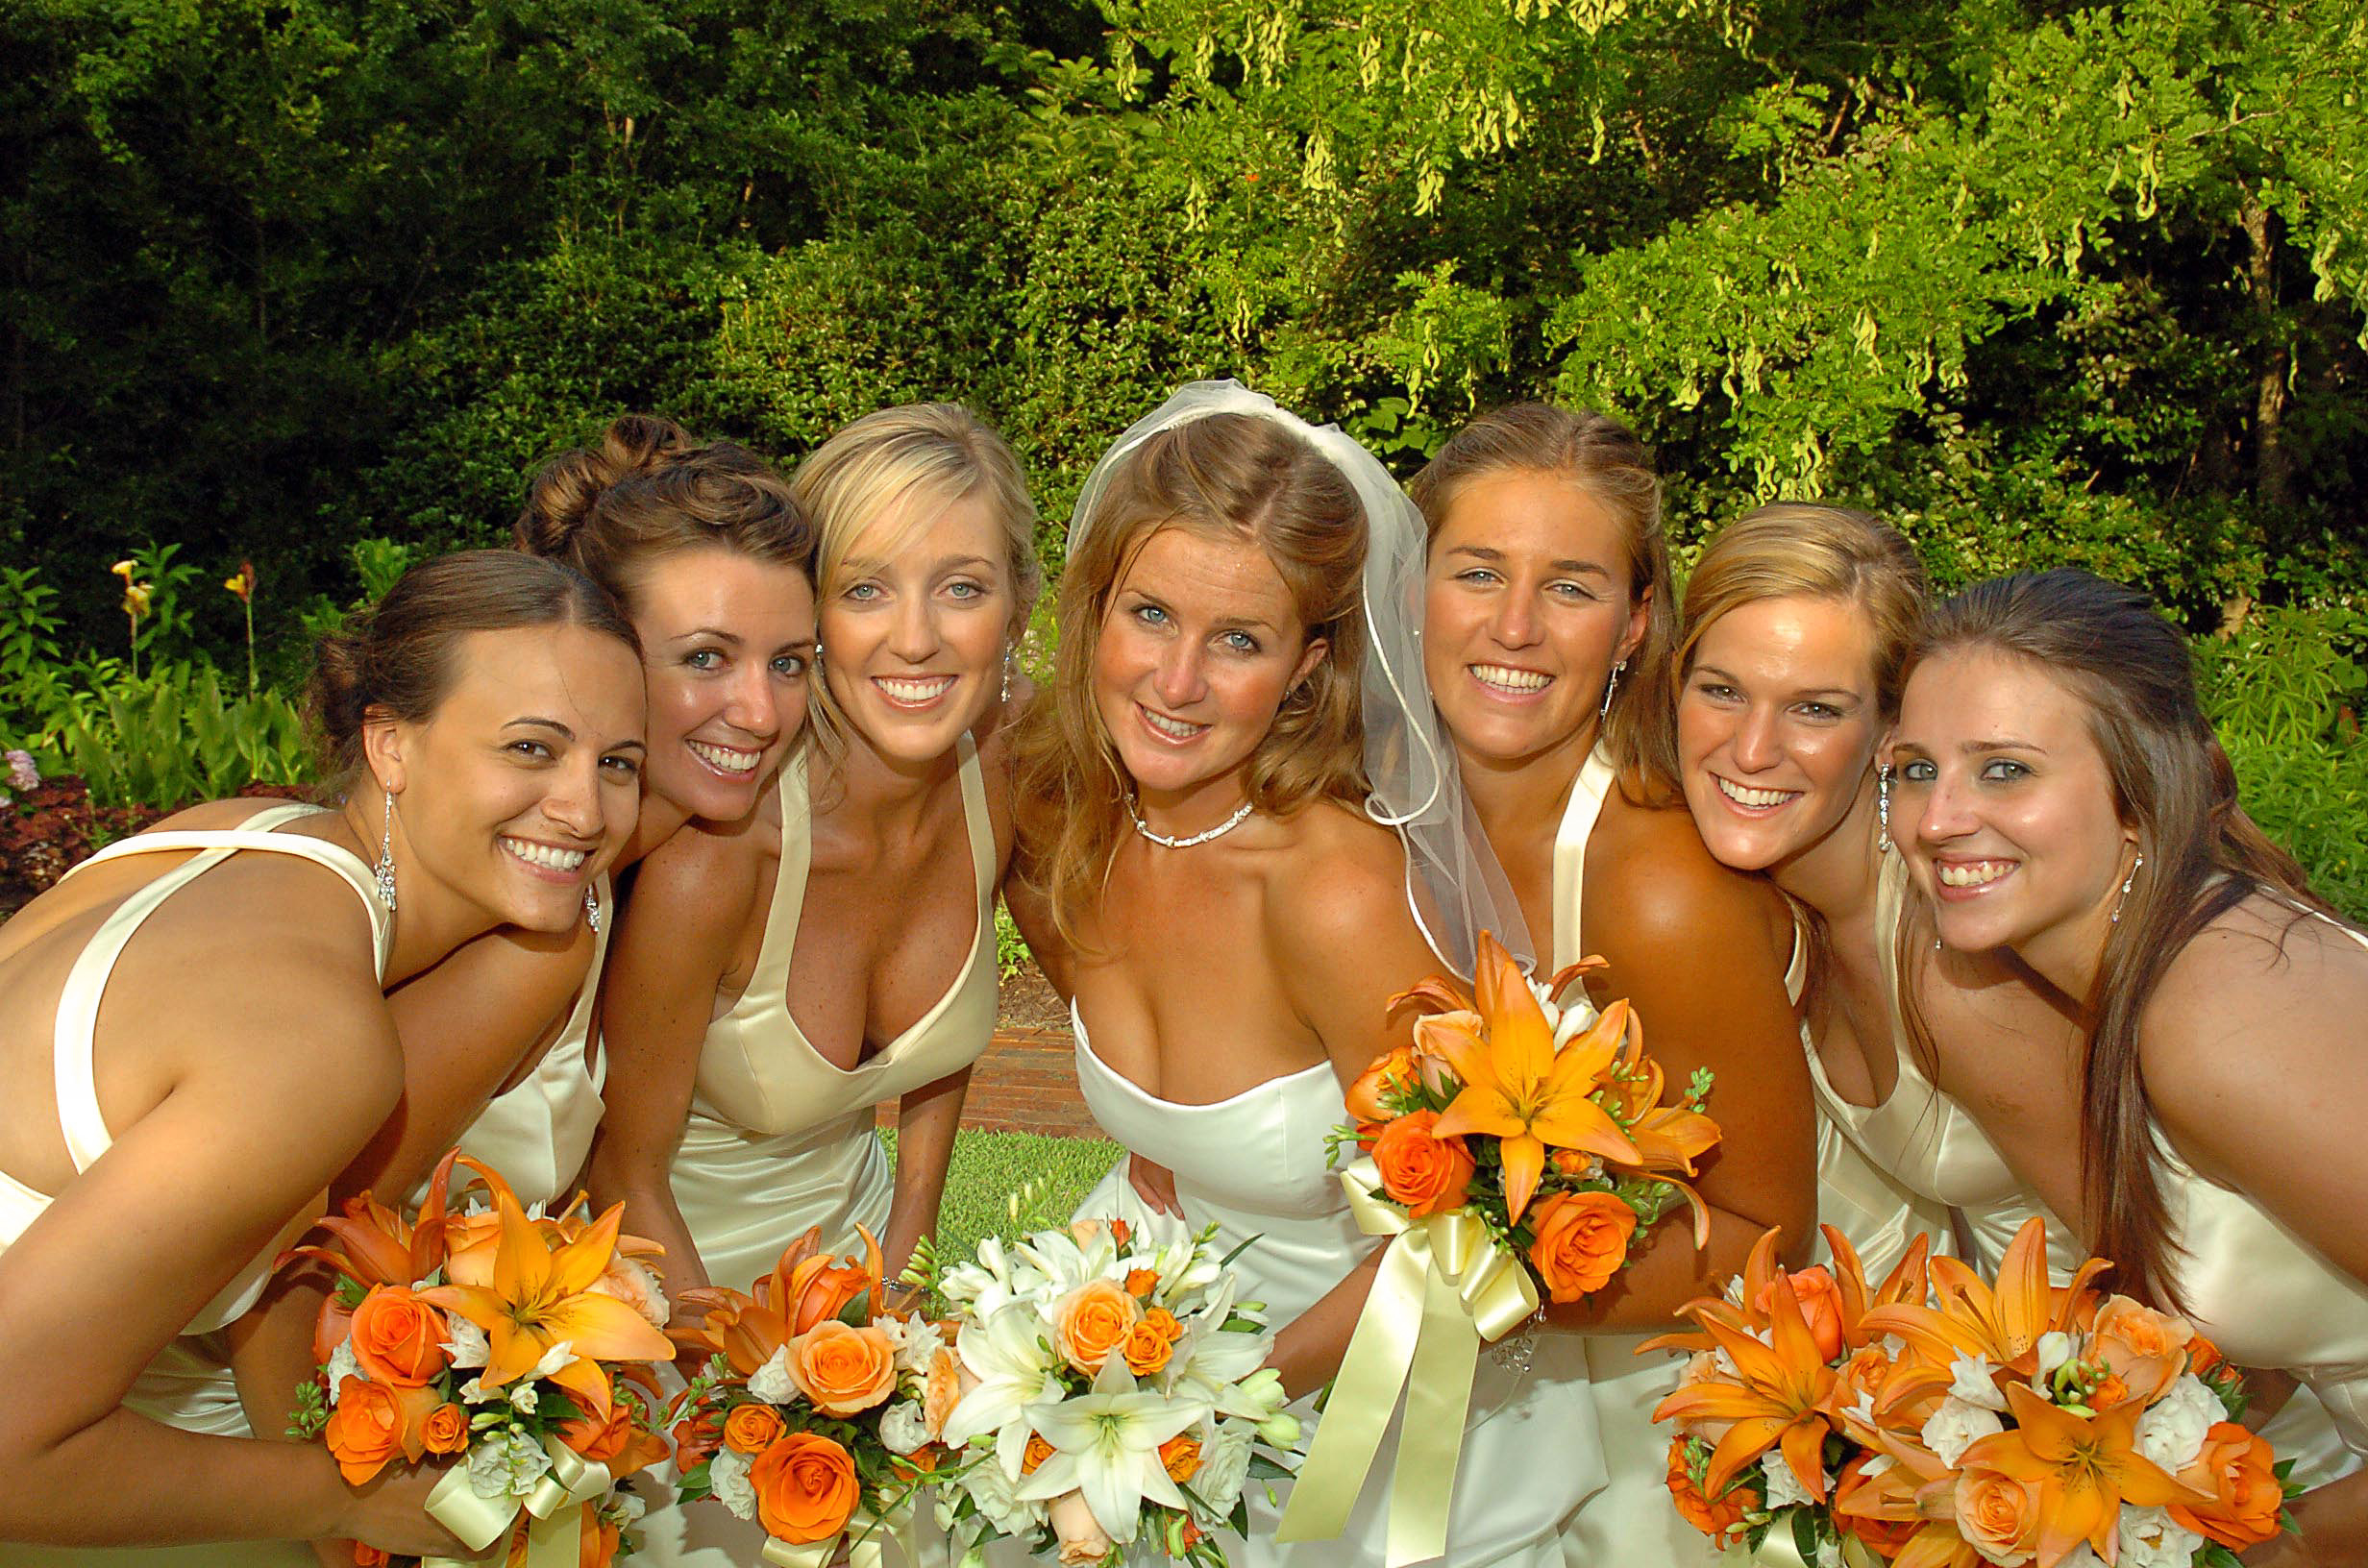 Bride and bridesmaids posed photo.